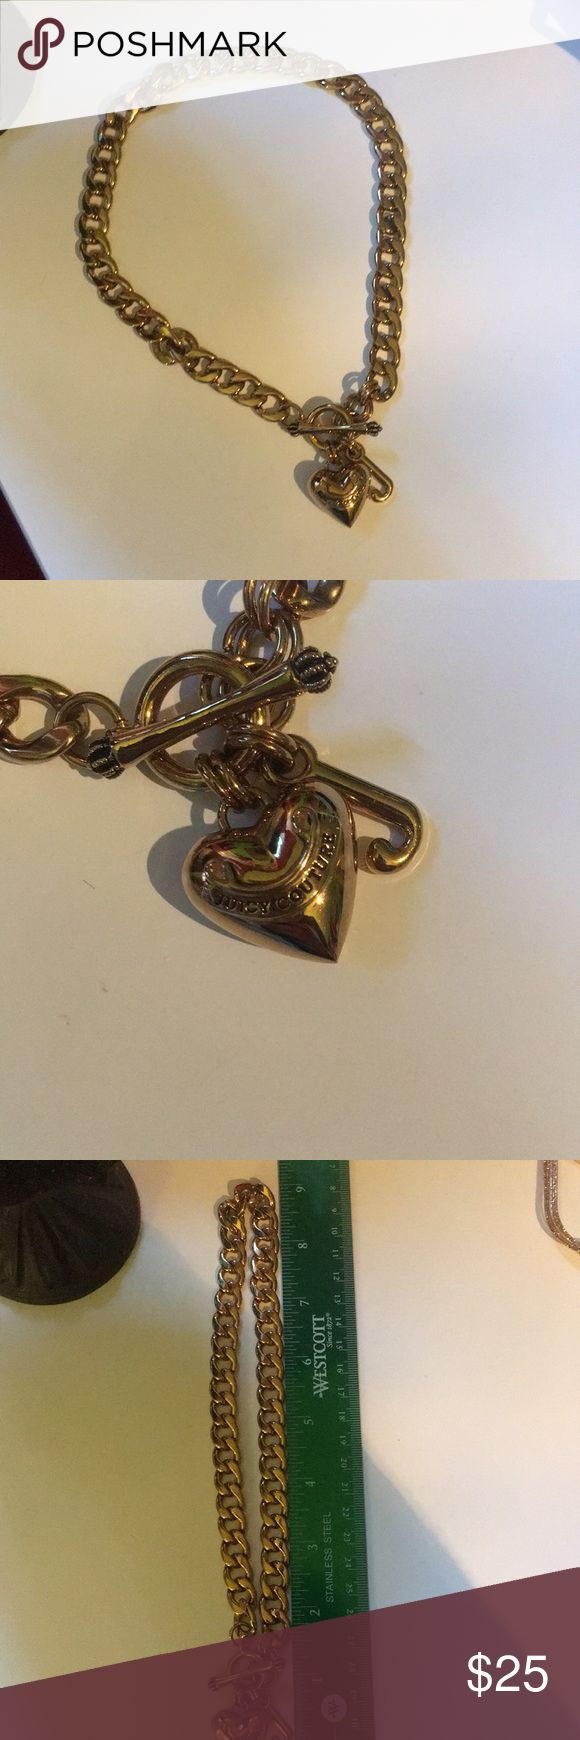 Juicy Couture Necklace Well taken care of. It's cute looks new. Juicy Couture Jewelry Necklaces